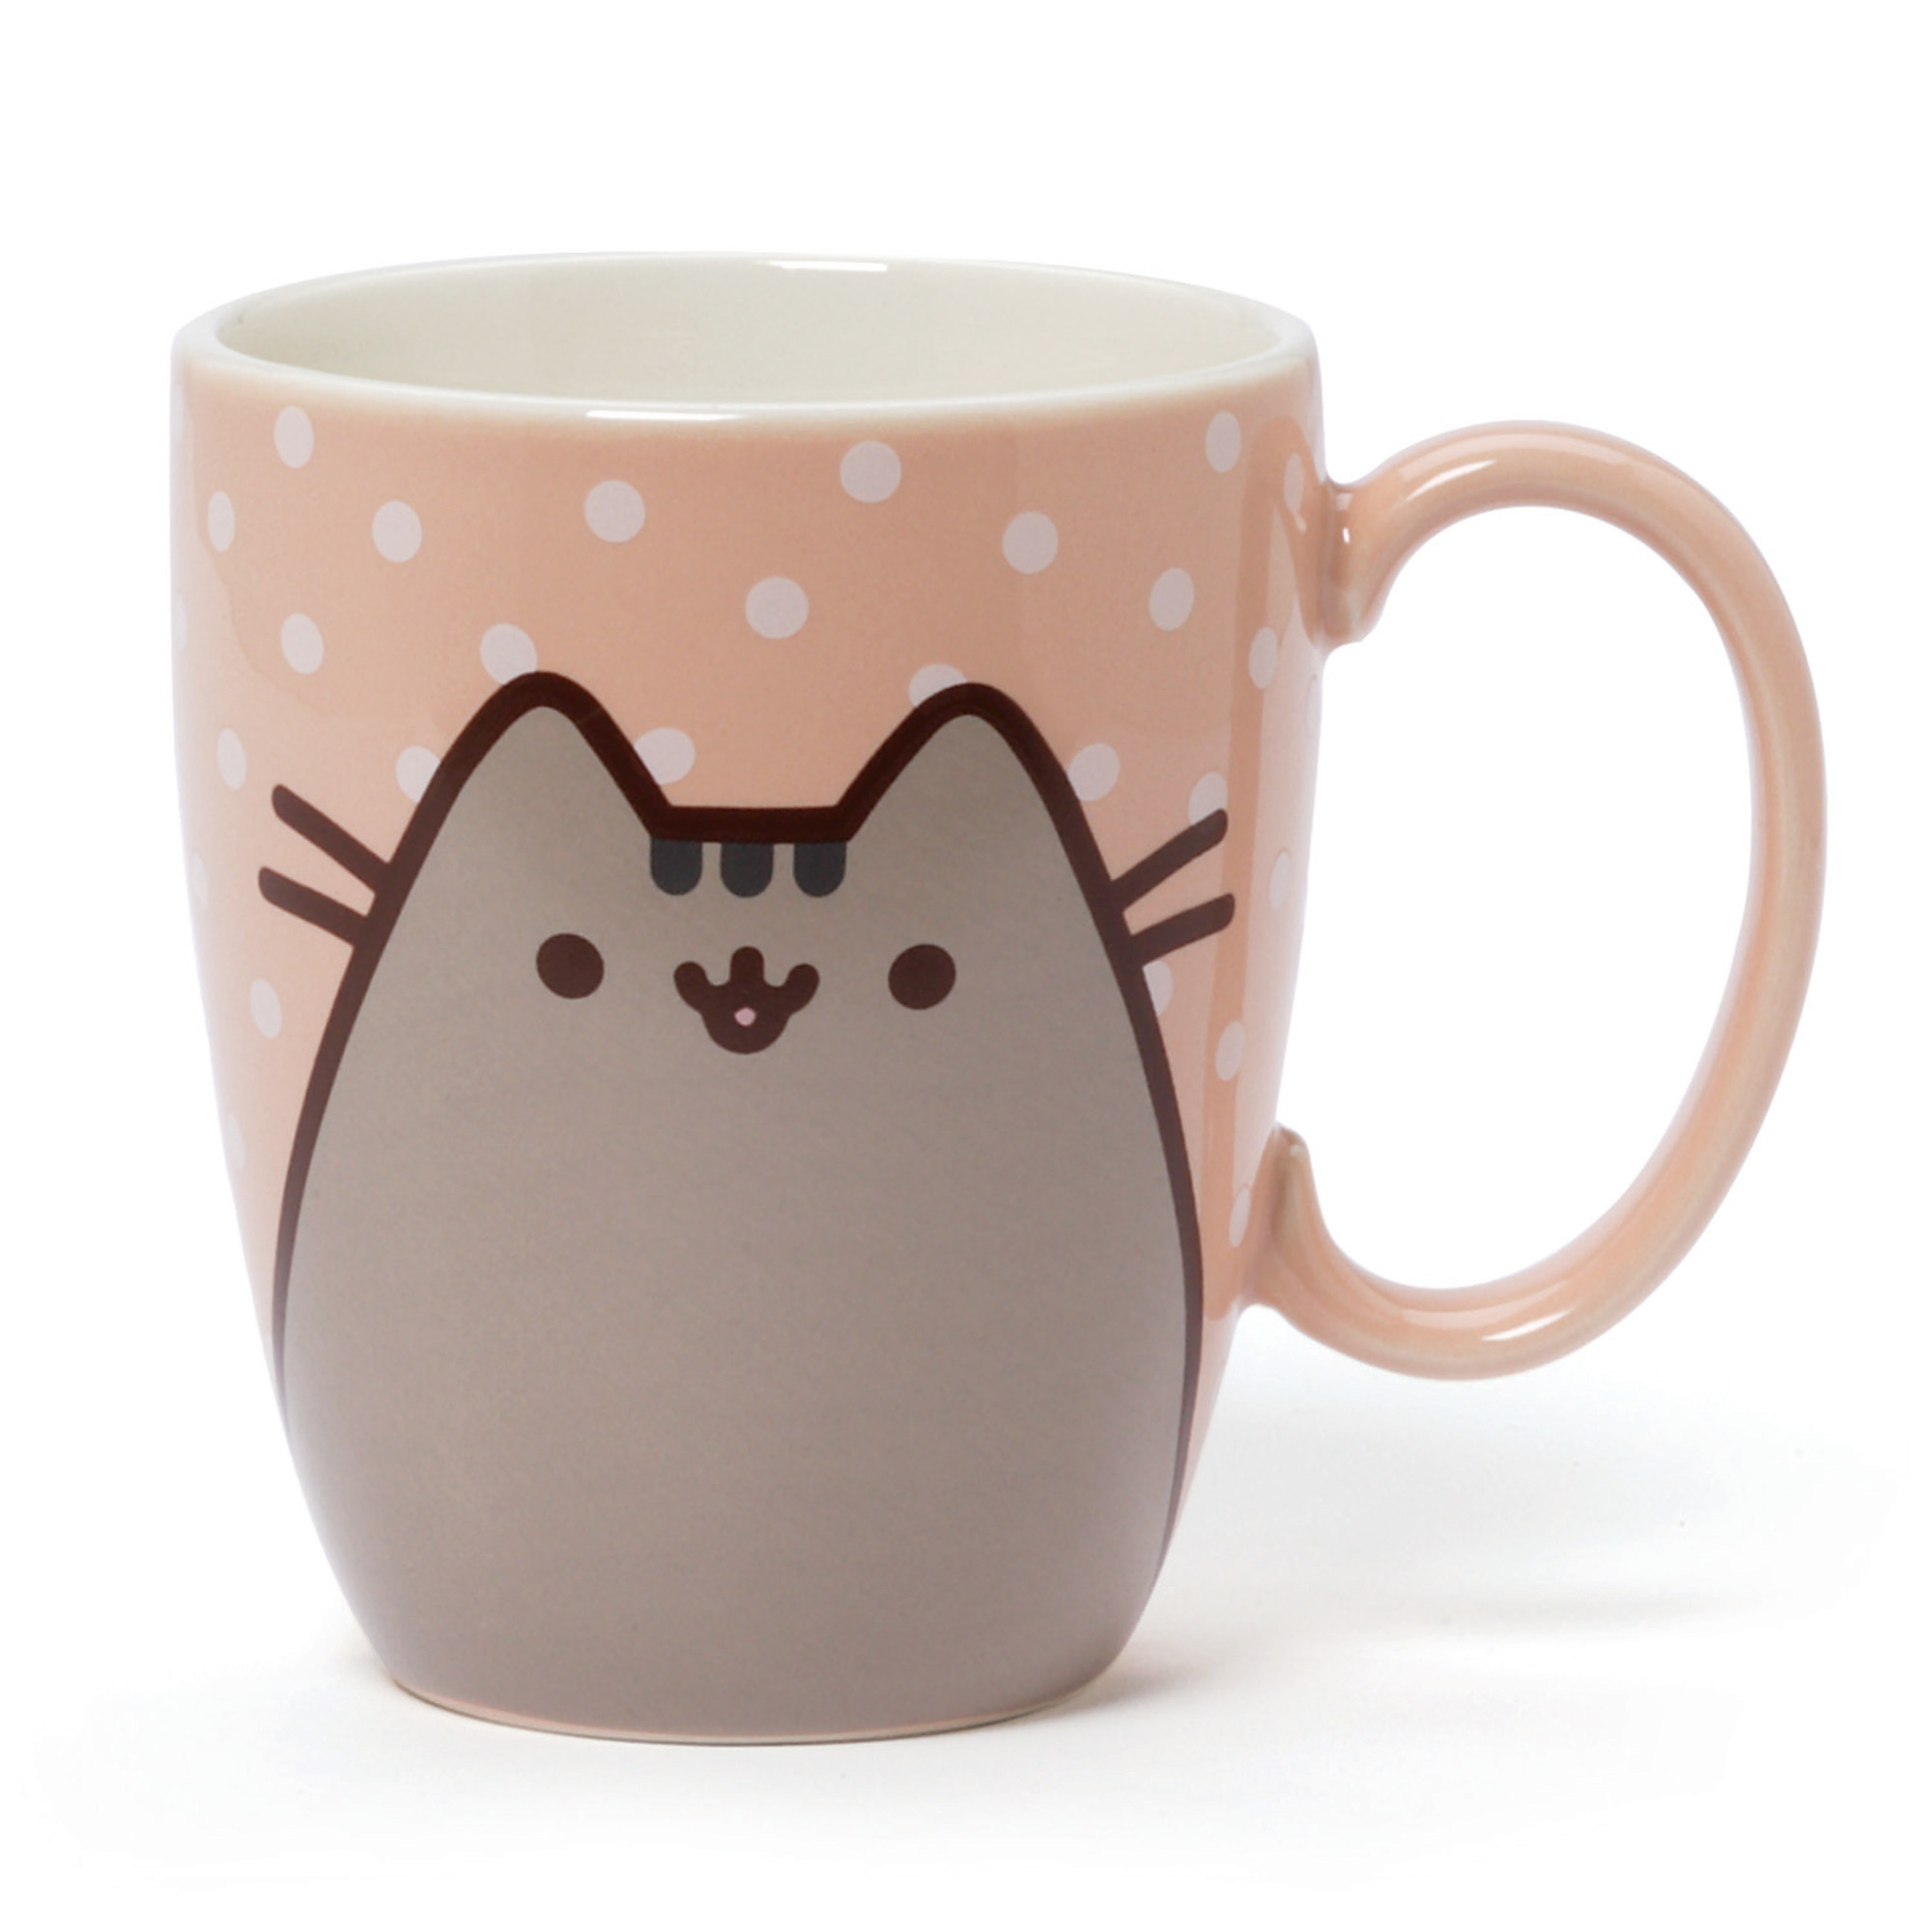 GUND Pusheen 12 oz Mug by GUND